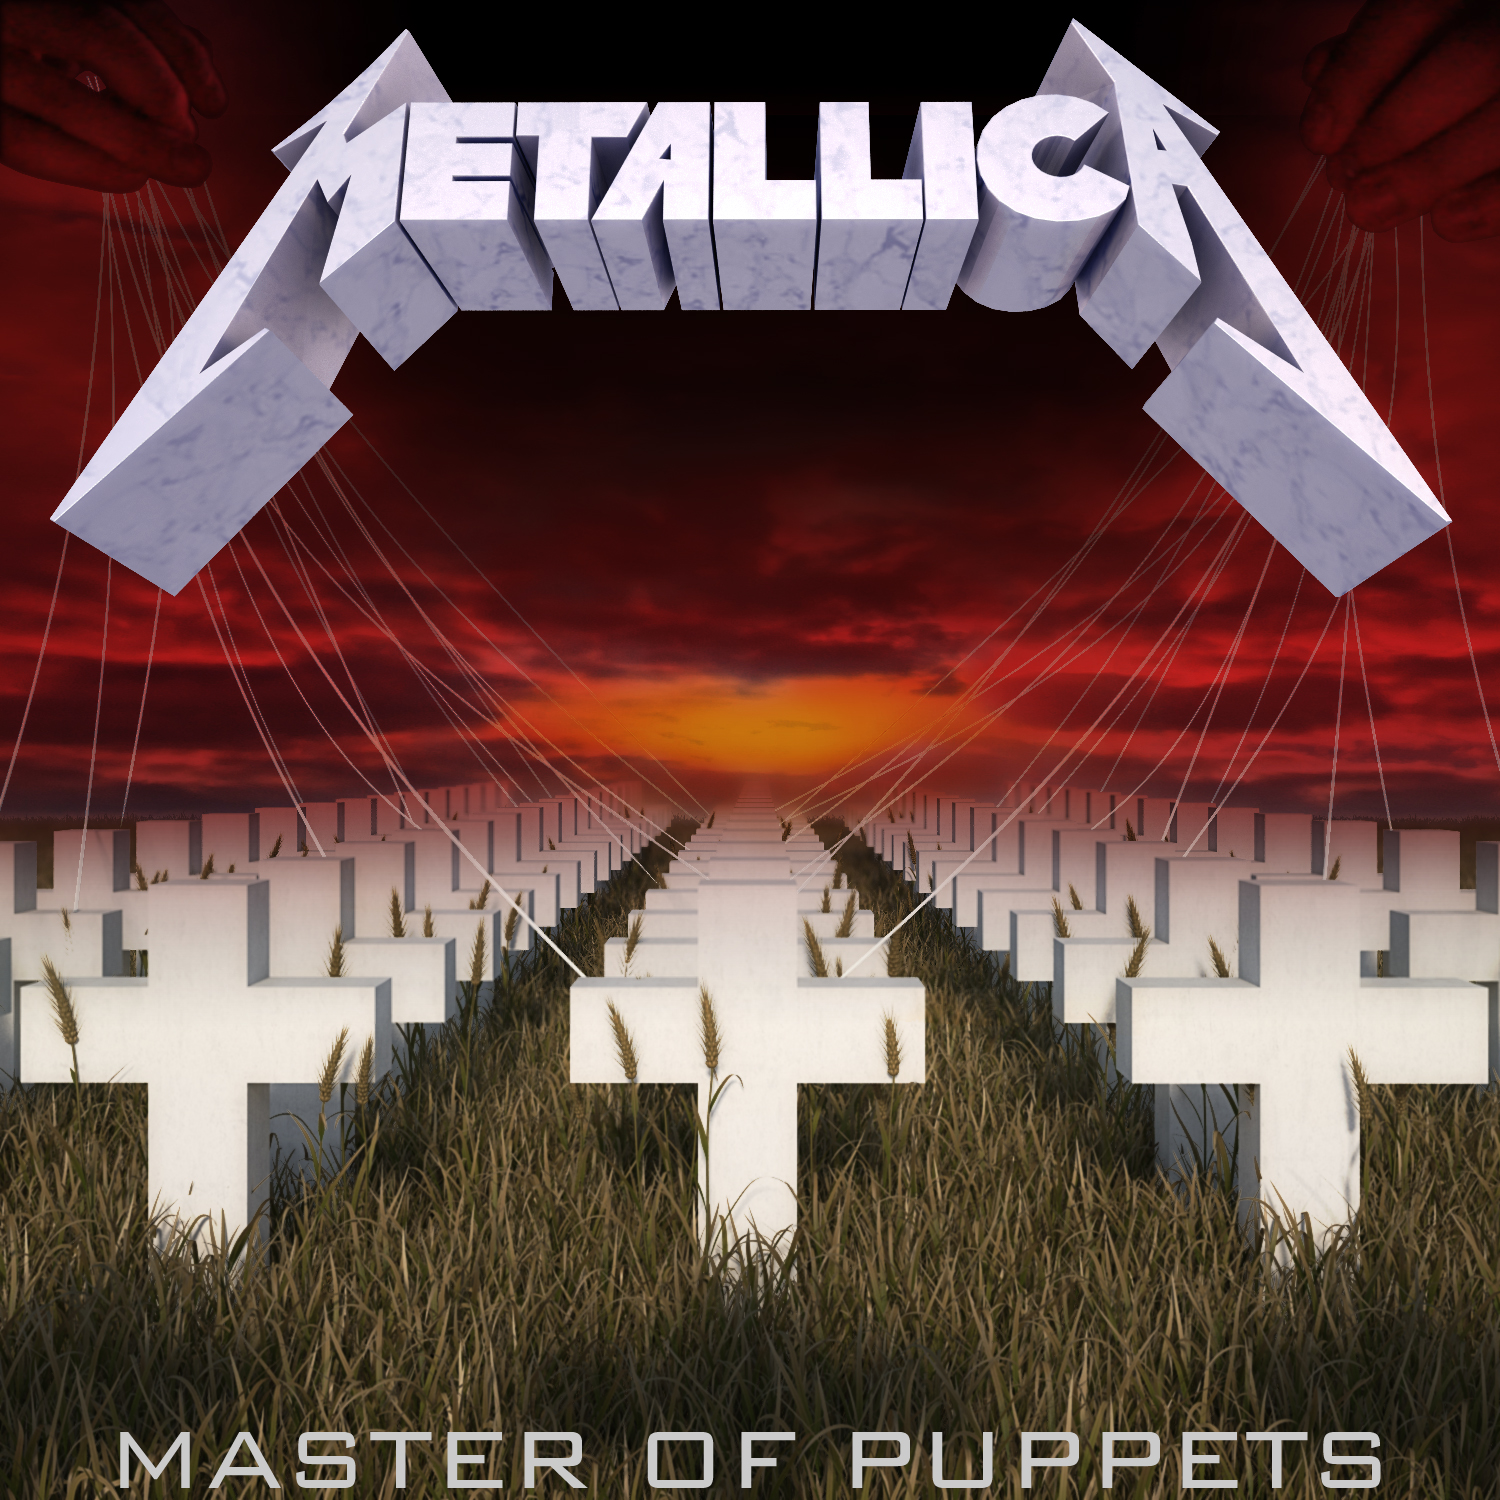 Metallica Wallpaper Master Of Puppets